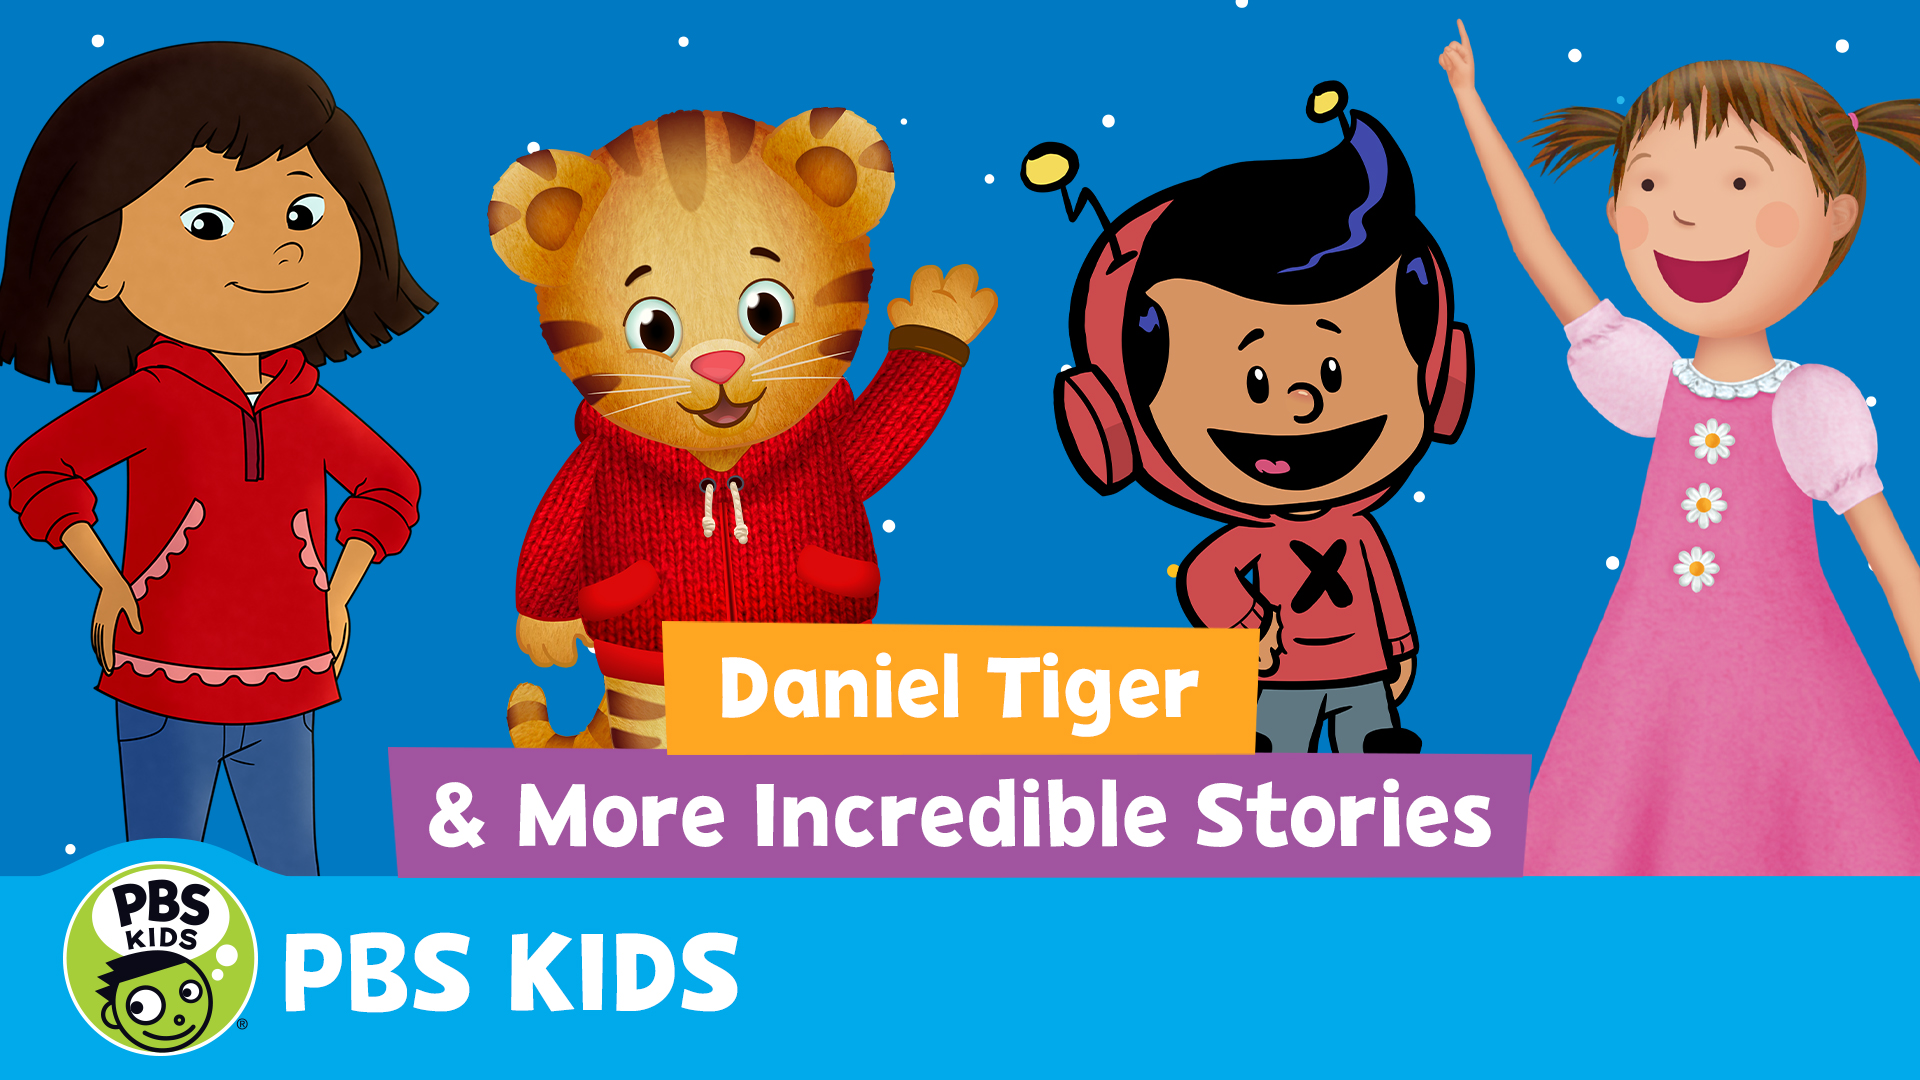 Daniel Tiger and More Incredible Stories